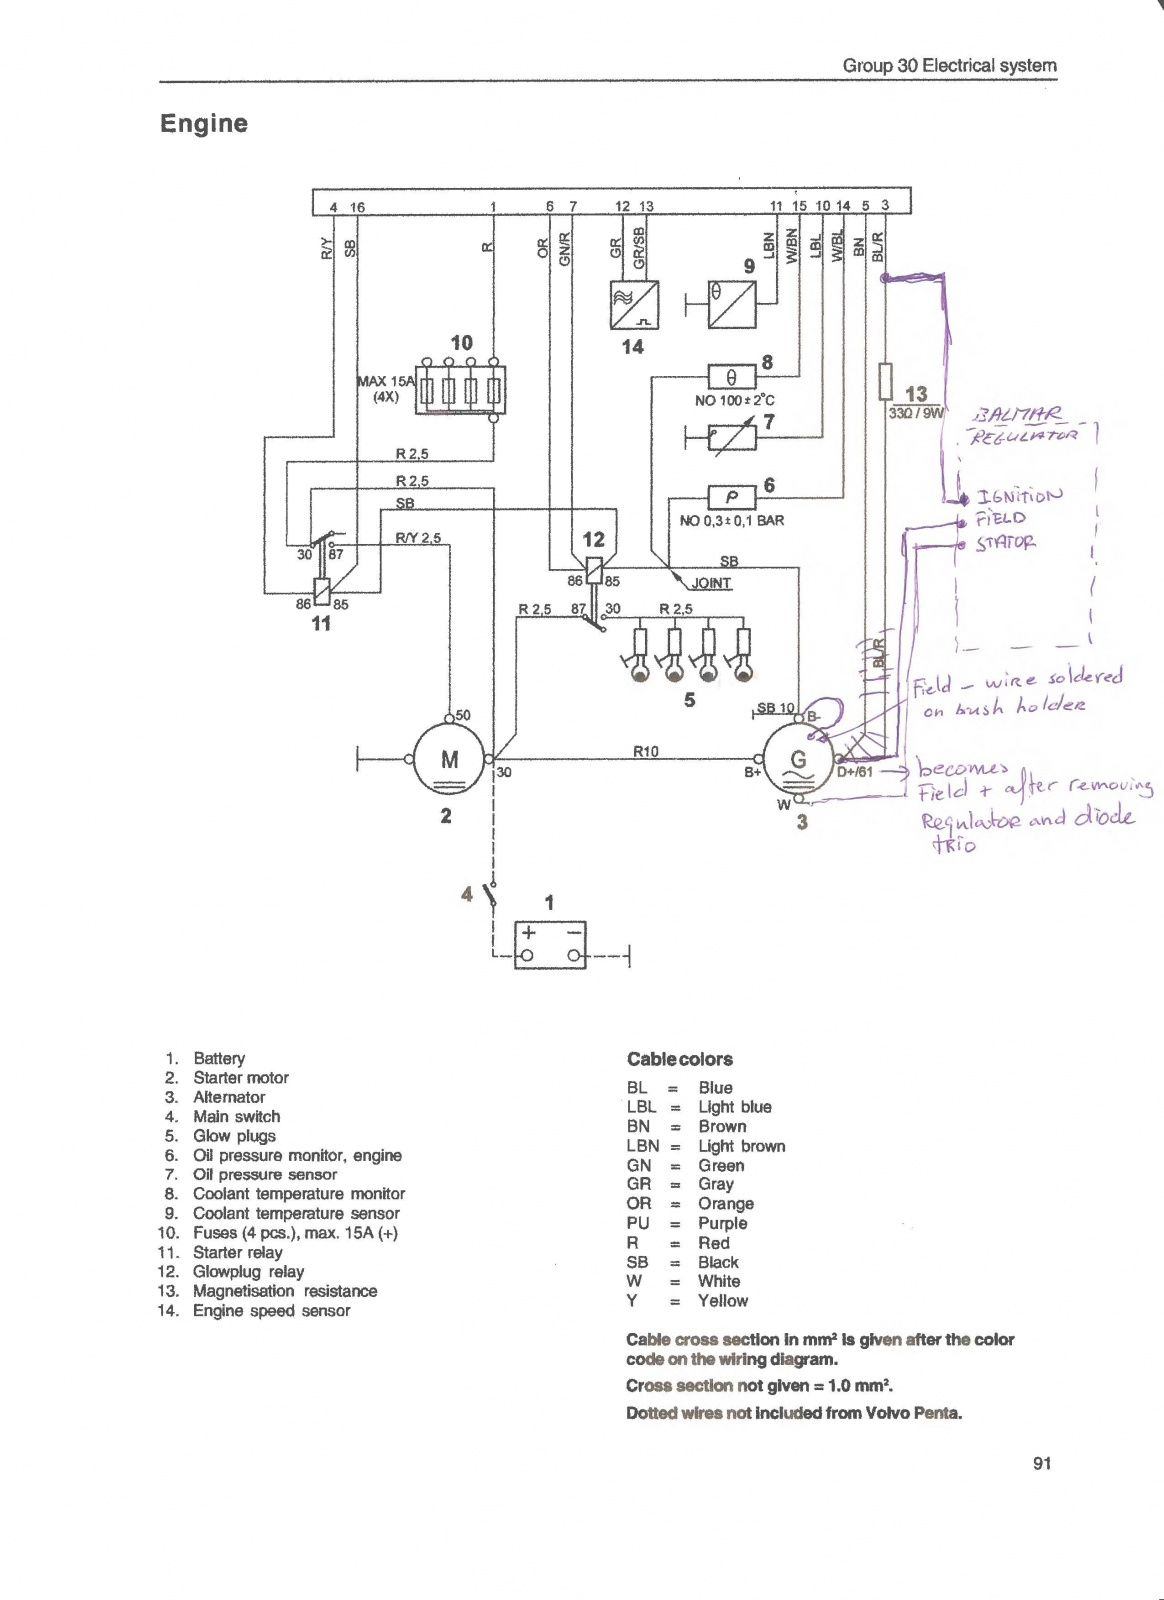 headlight wiring diagram for 2000 volvo semi volvo